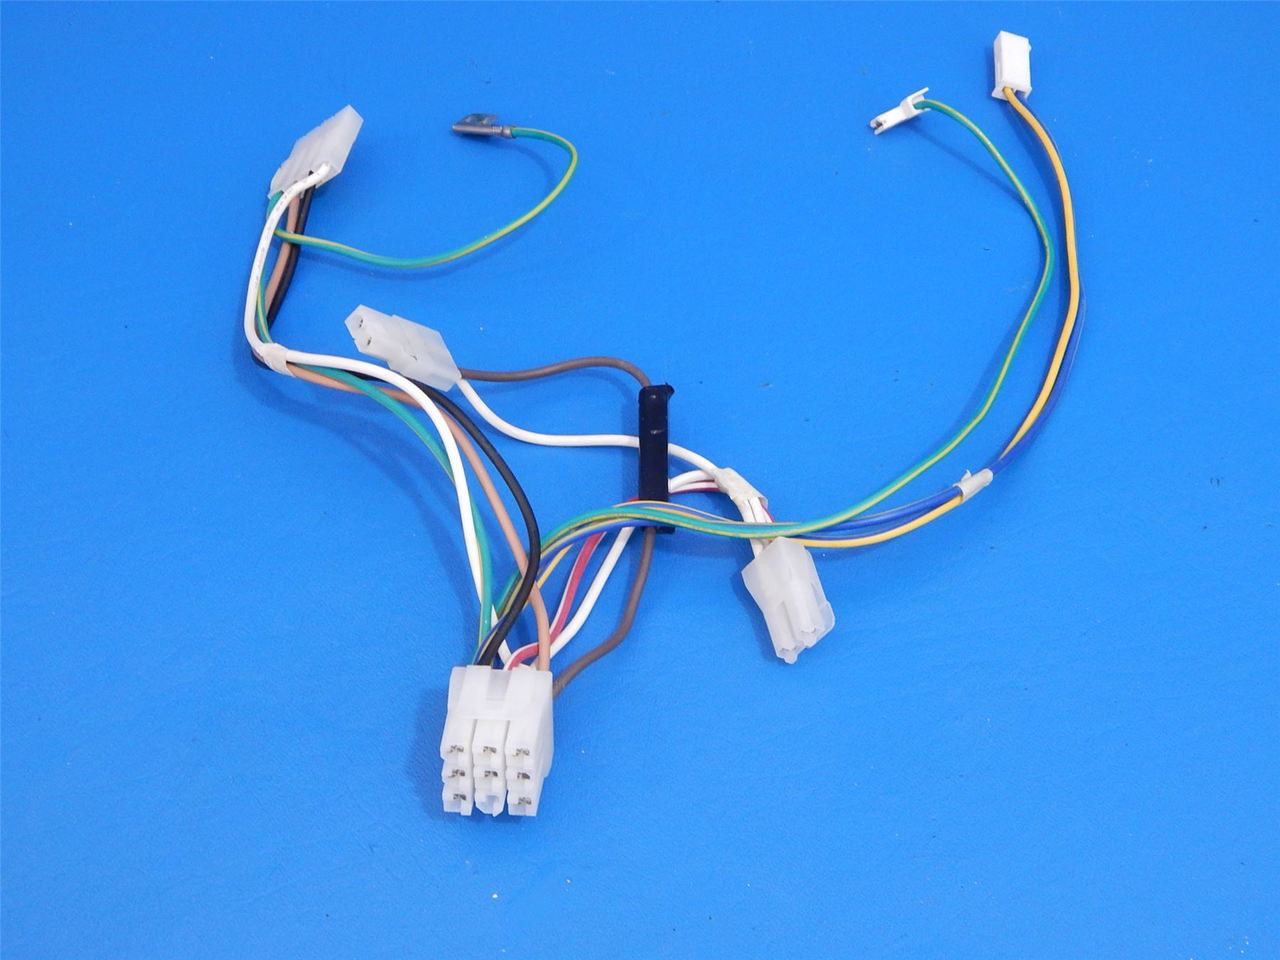 hight resolution of whirlpool bottom mount refrigerator wrf560smyw02 freezer wire harness w10487766 ice cold beer appliance parts